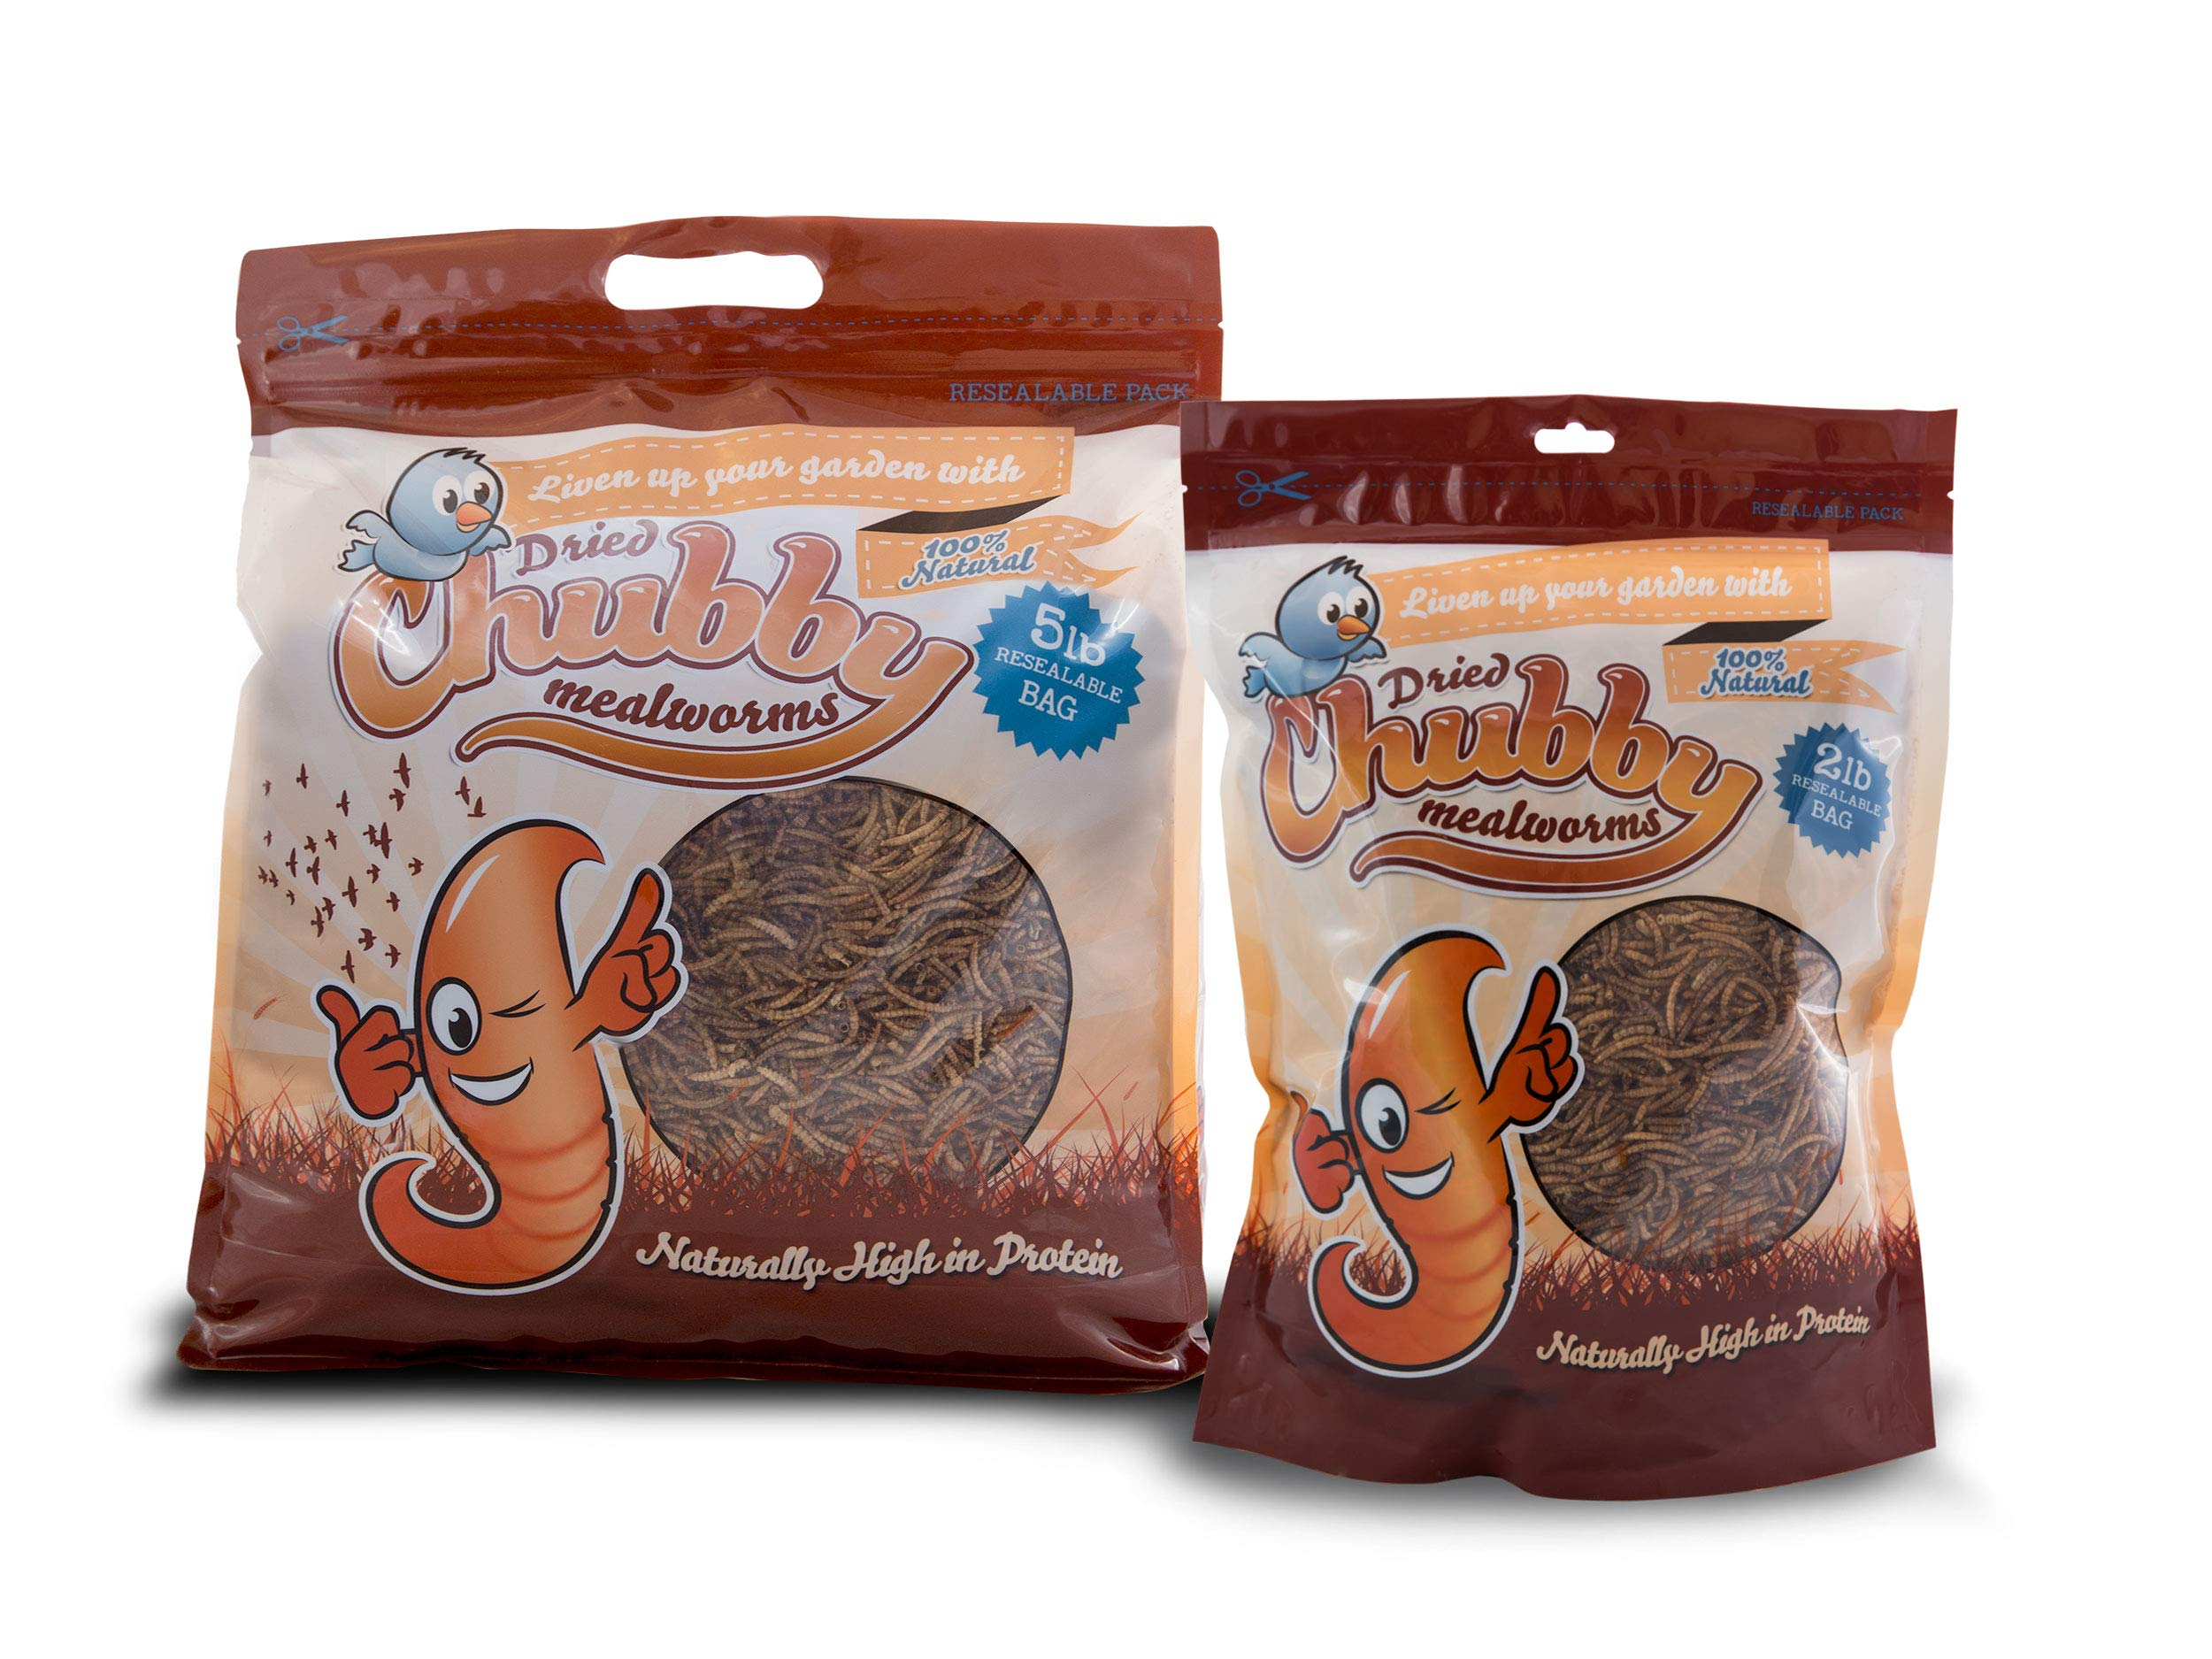 Chubby Mealworms Bulk Dried Mealworms for Wild Birds, Chickens etc. (10Lbs)